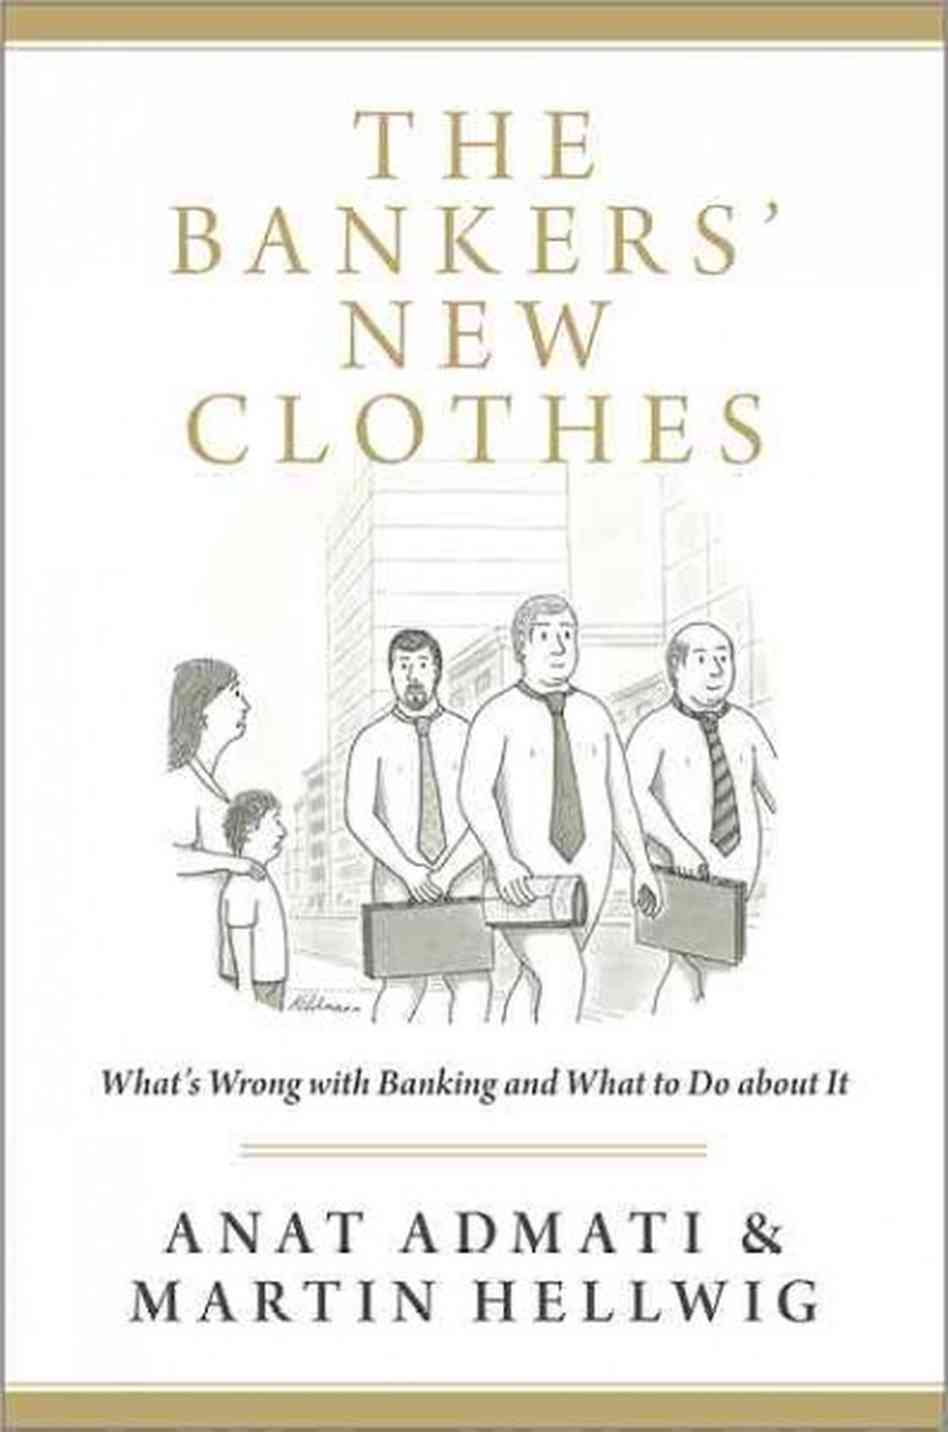 The Bankers' New Clothes – Anat Admati And Martin Hellwig